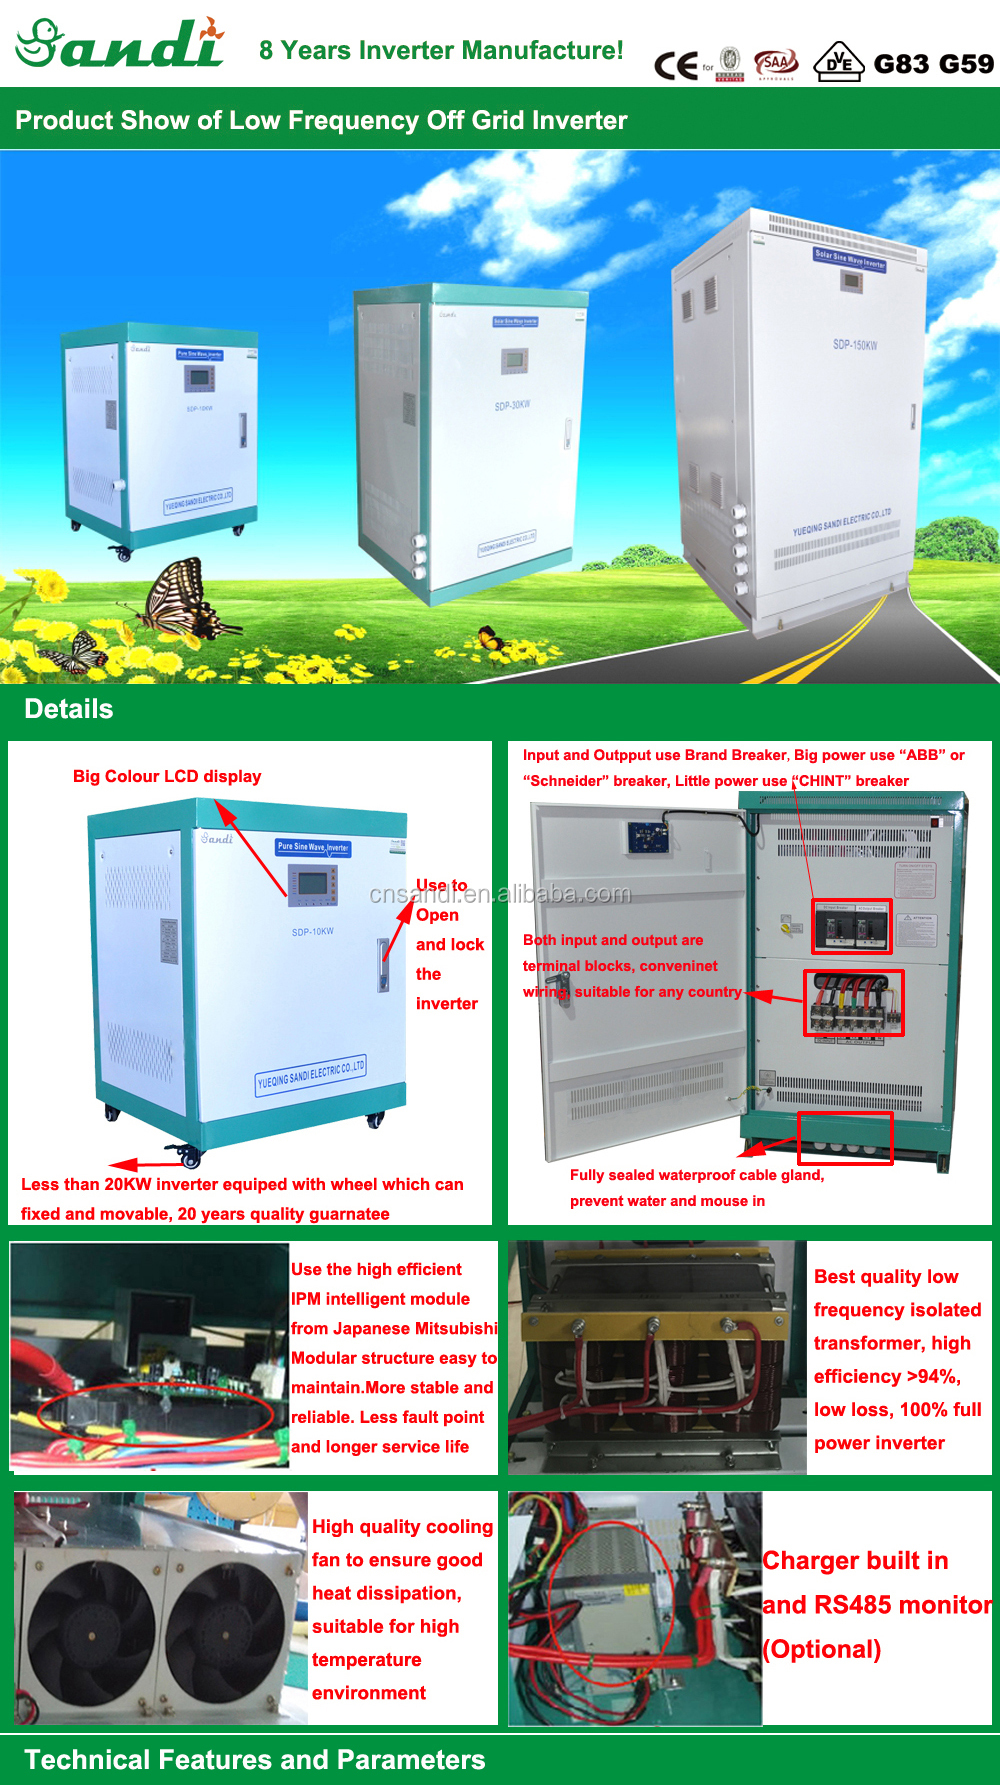 High Quality Pure Sine Wave power inverter 10kw two phase 110 220v split phase inverter